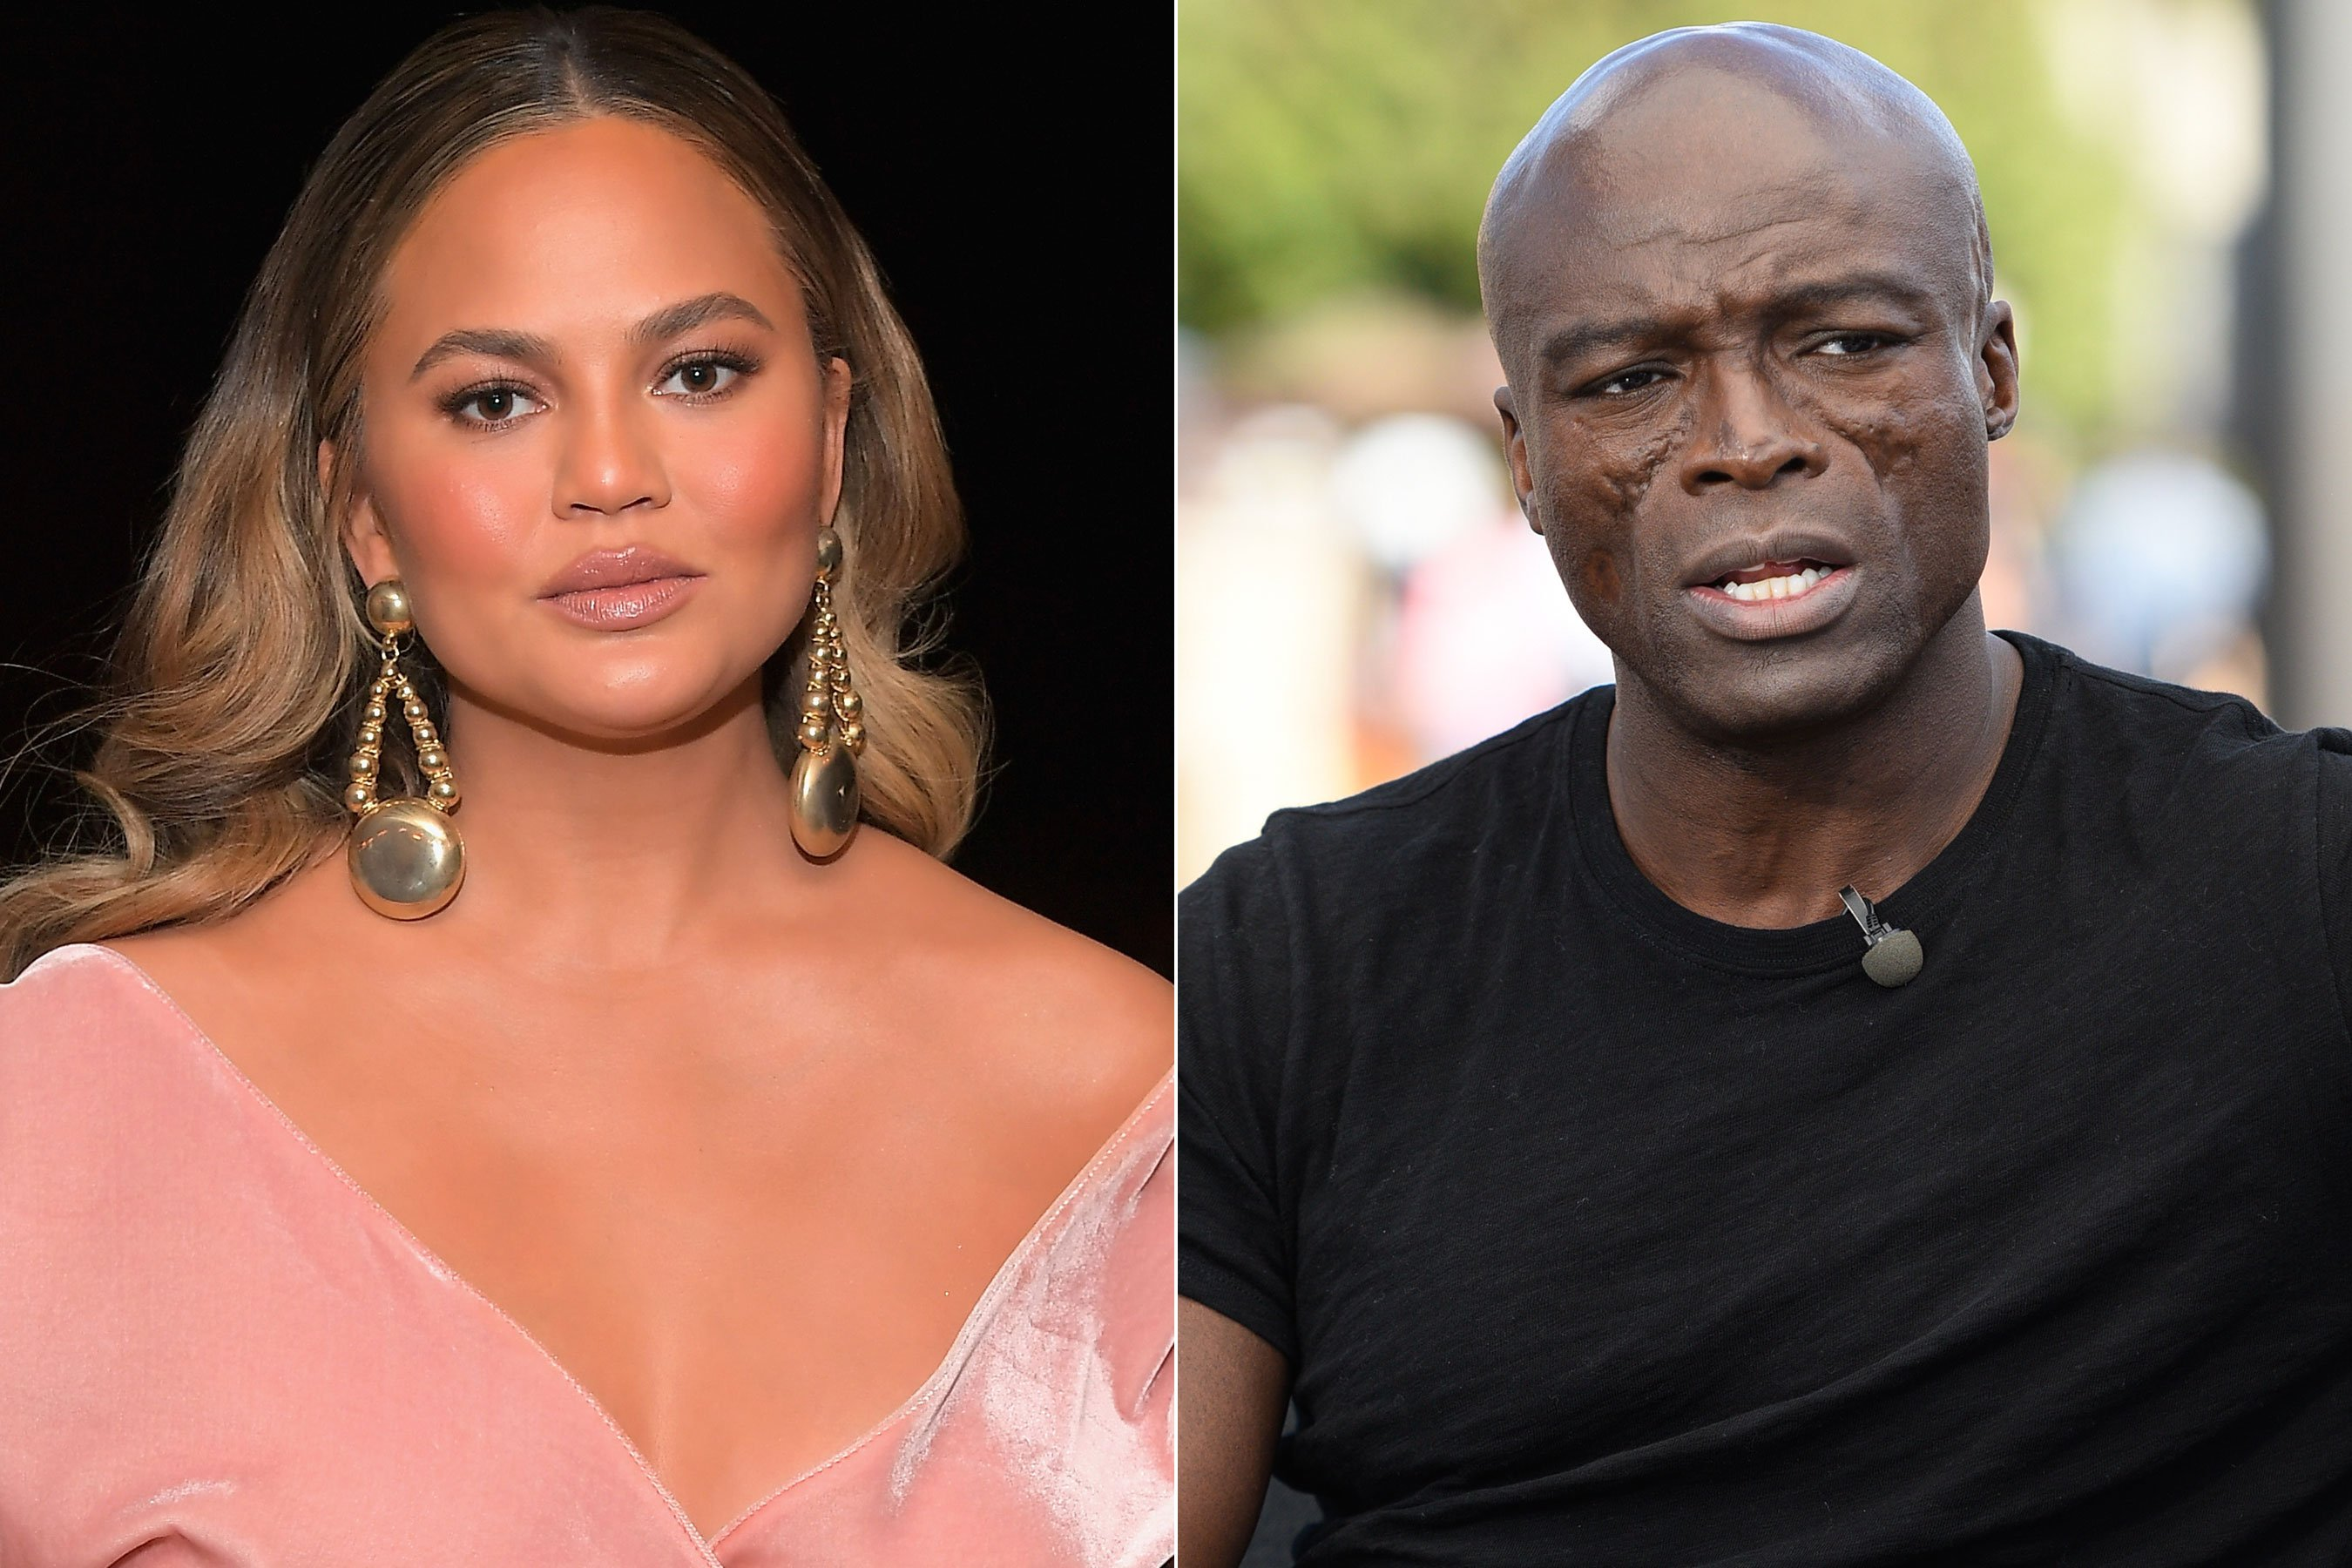 Oprah Winfrey: Chrissy Teigen slams Seal over Harvey Weinstein meme